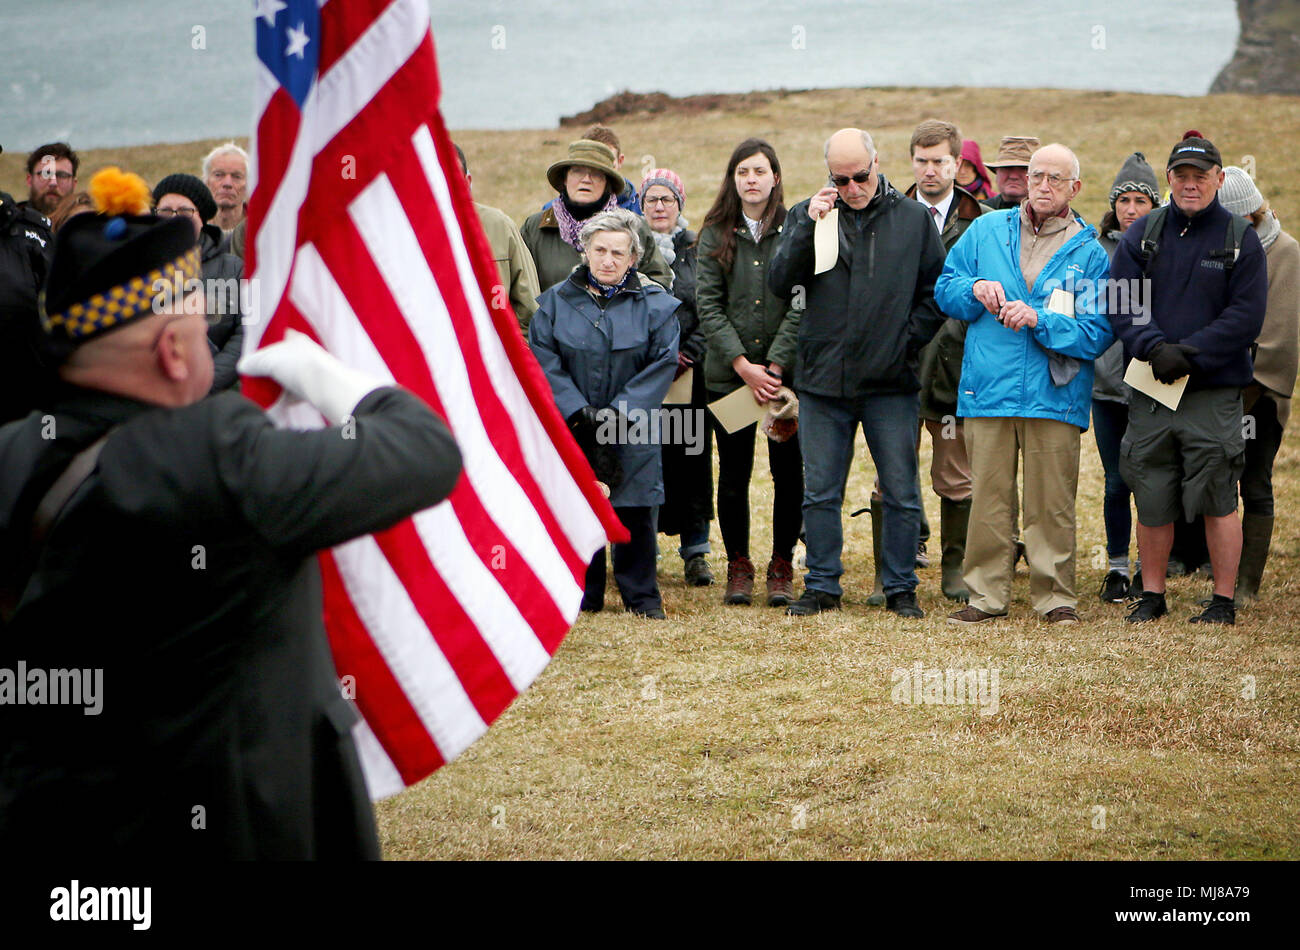 A service takes place at the American Moment at the Mull of Oa on Islay, to remember around 700 First World War soldiers who lost their lives in the sinking of two US ships off the coast of the small Scottish island. Stock Photo